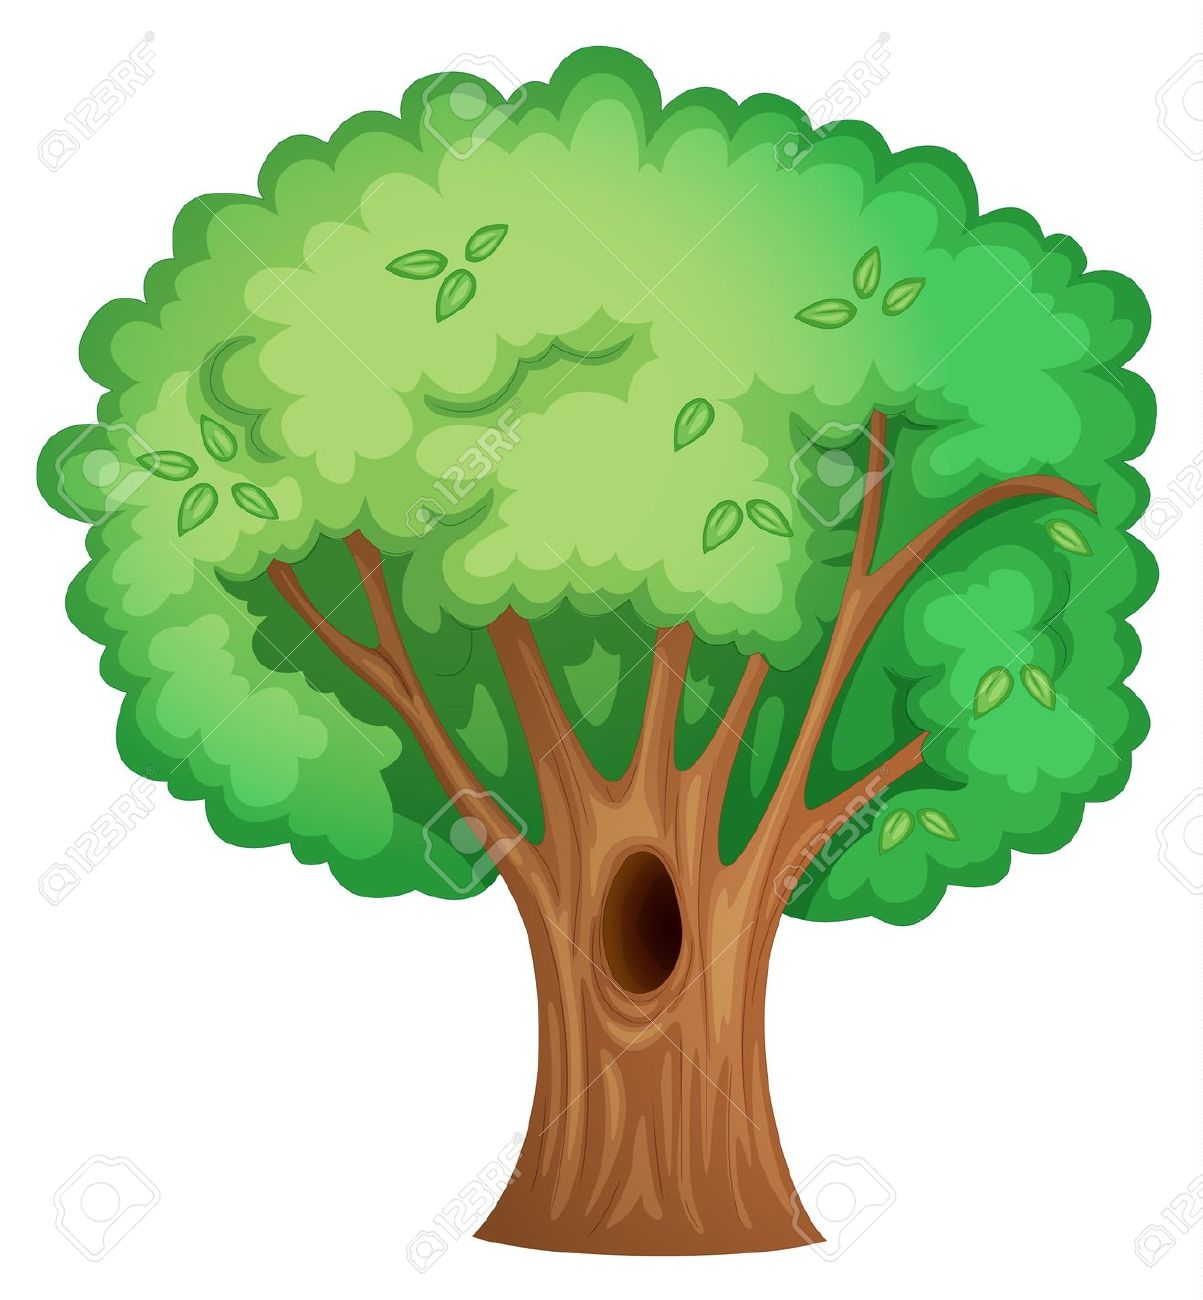 Tree Hollow clipart #15, Download drawings